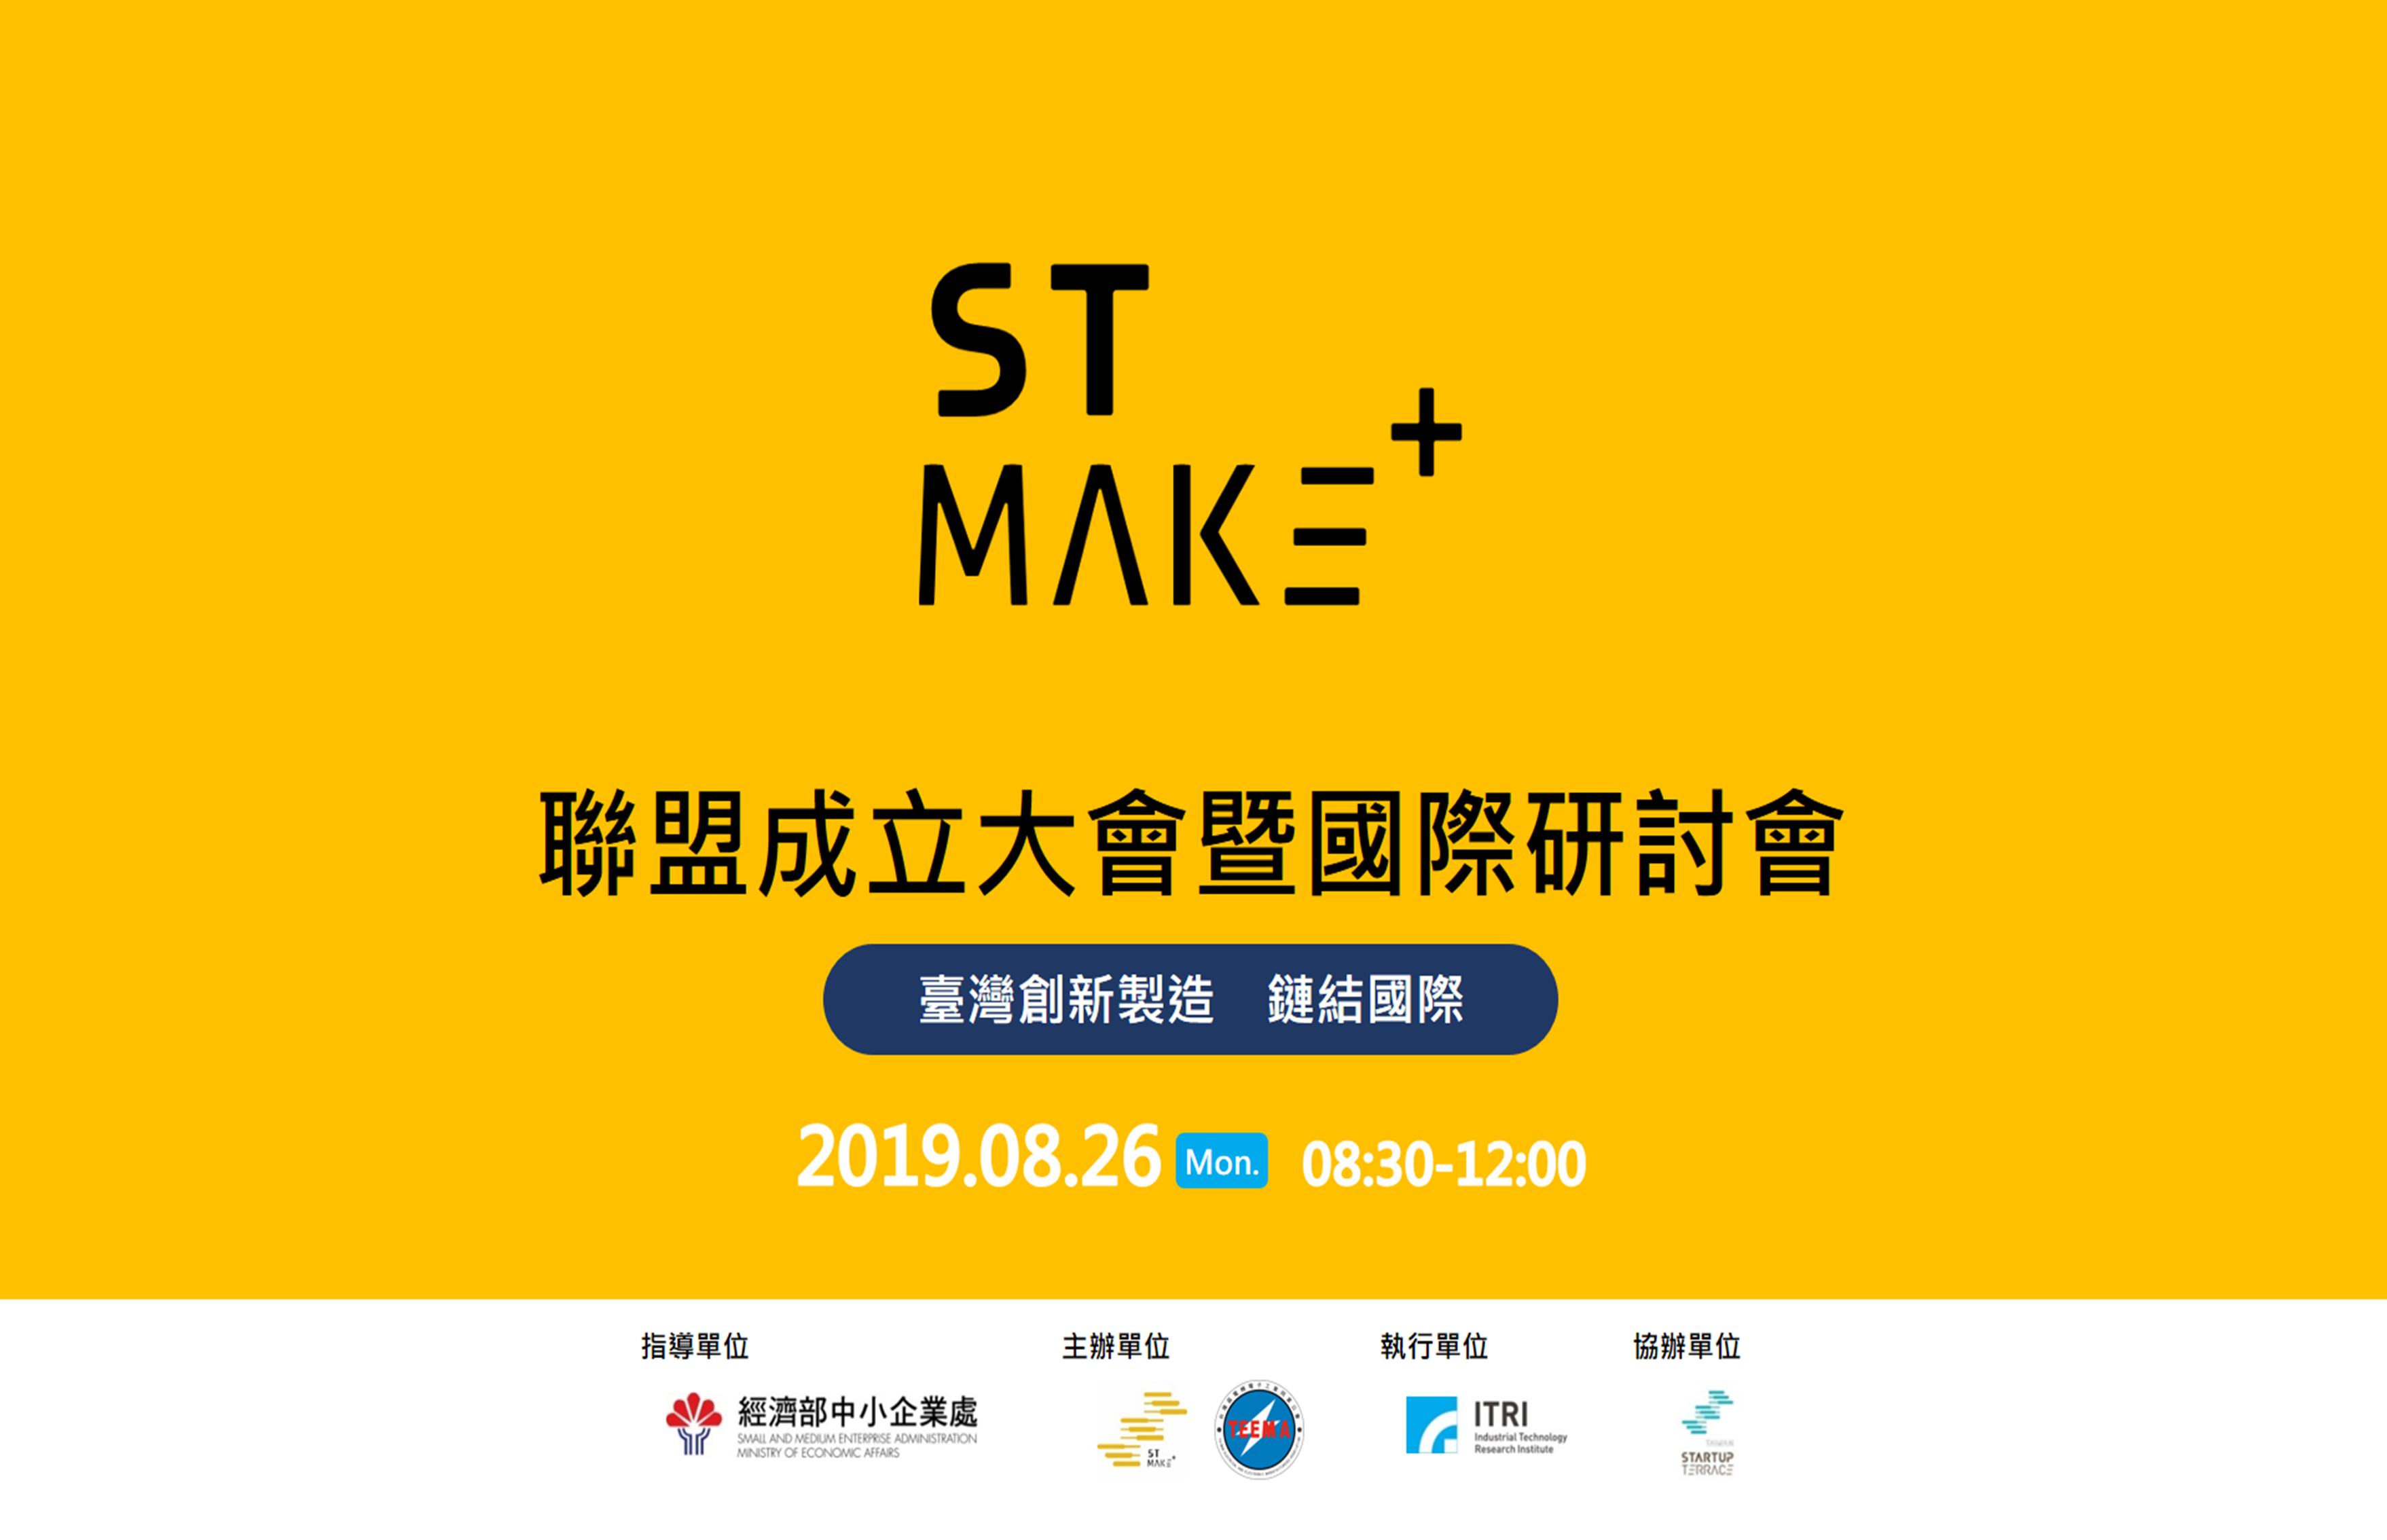 ST MAKE+ Launching Ceremony & International Conference